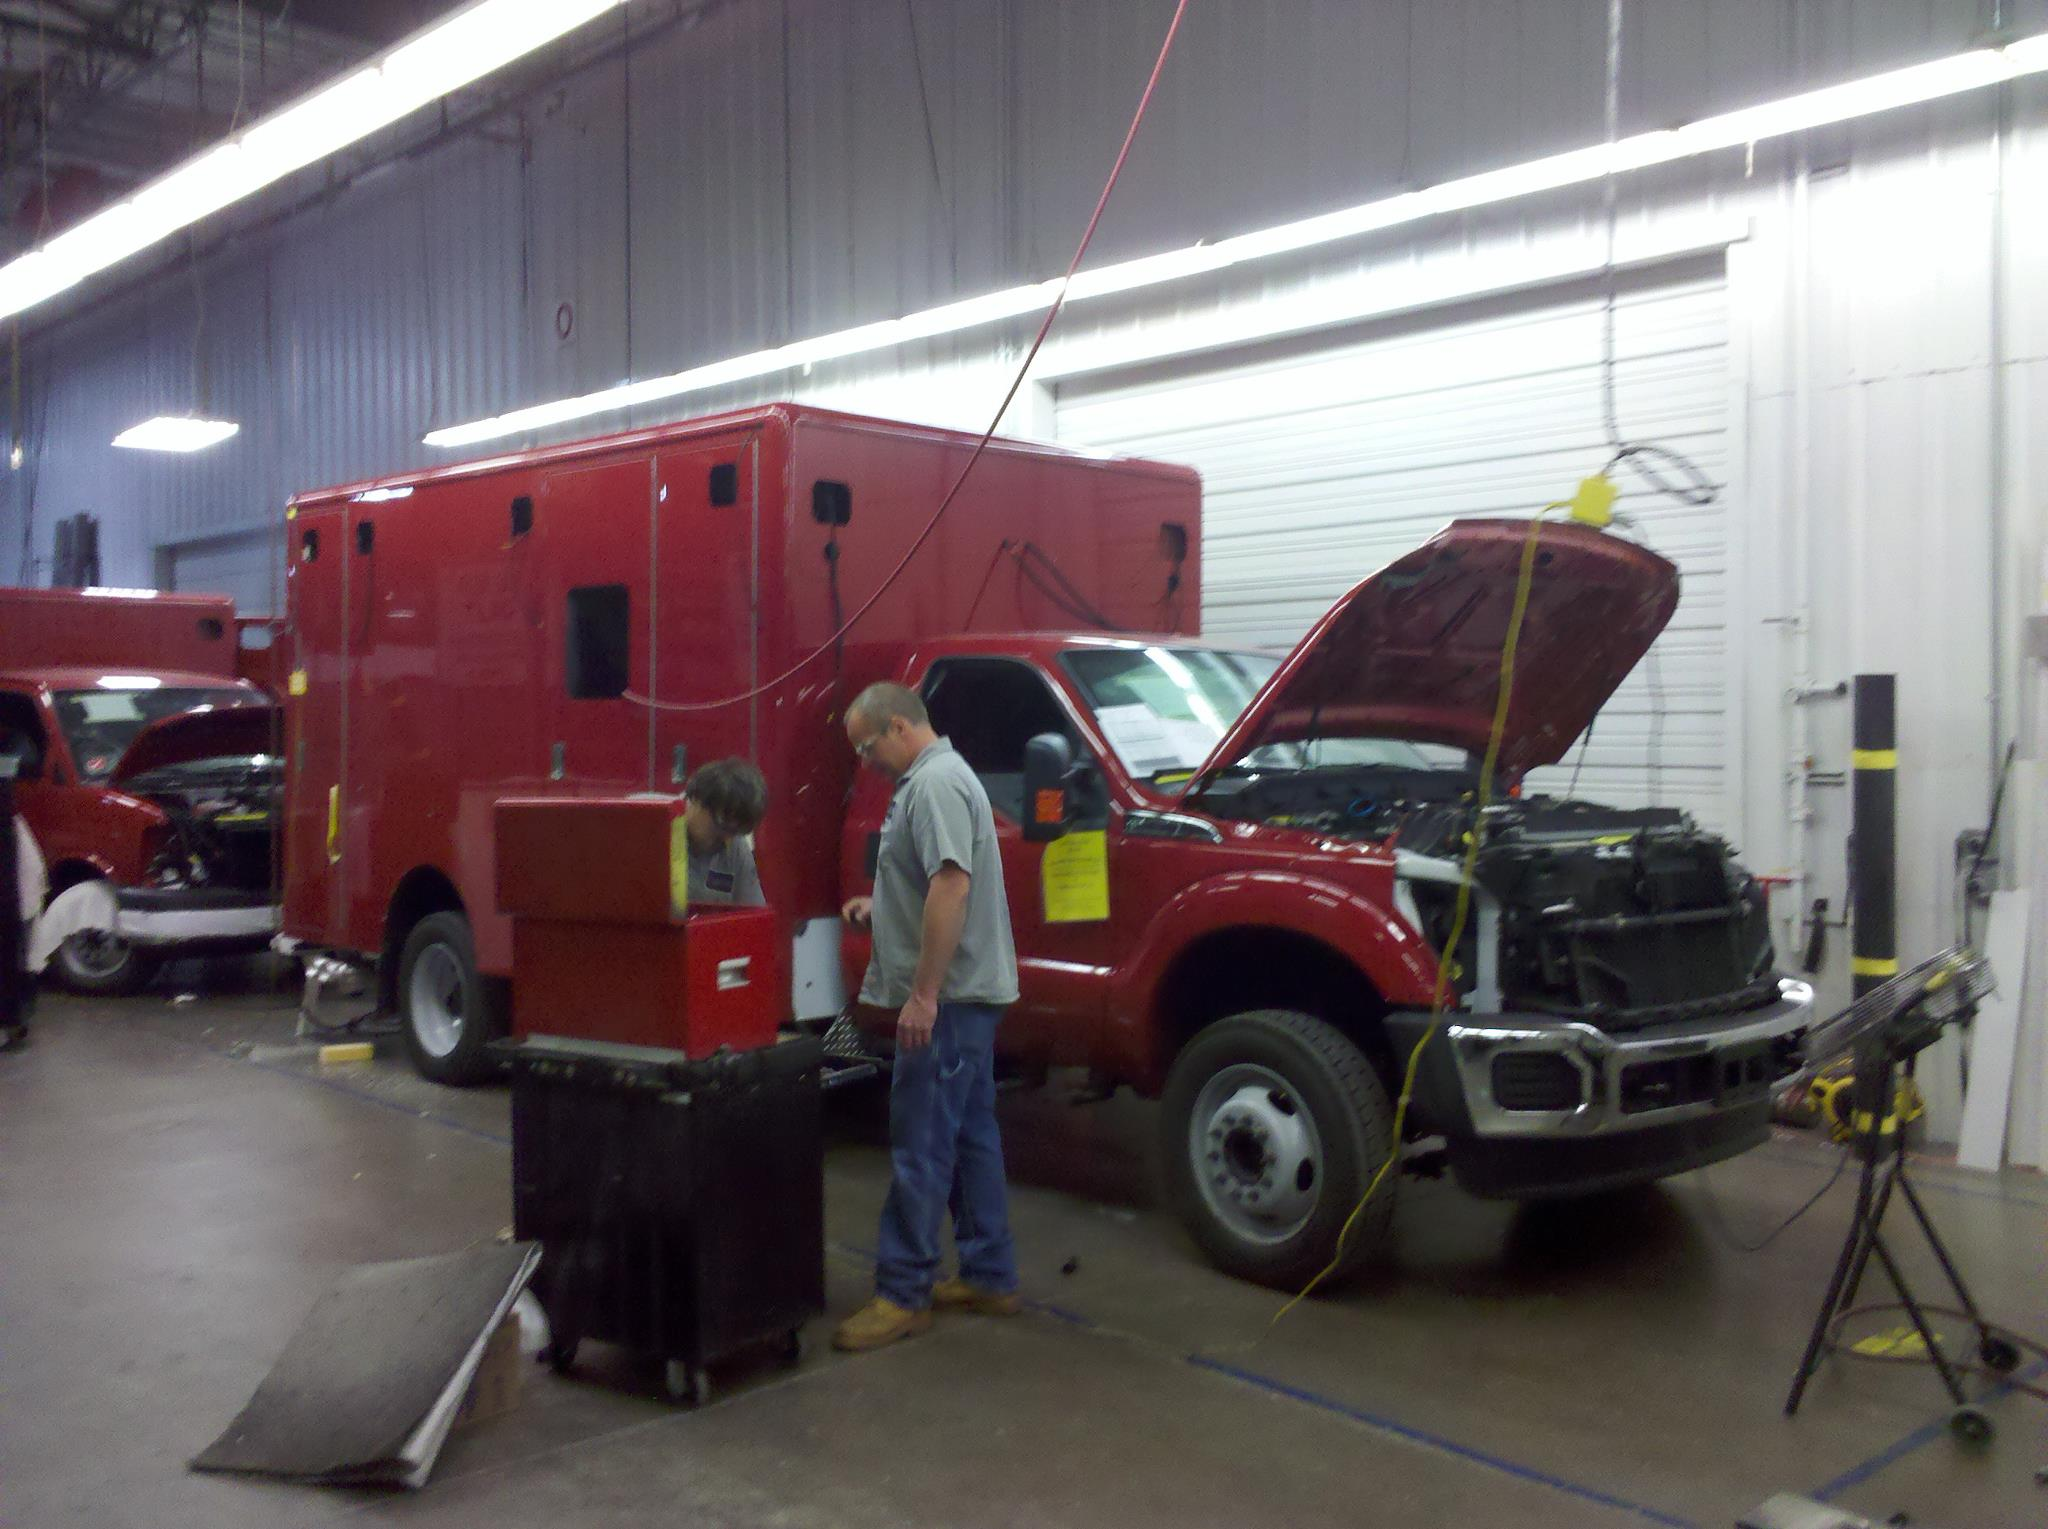 Highland Park Fire Department Horton ambulance in production